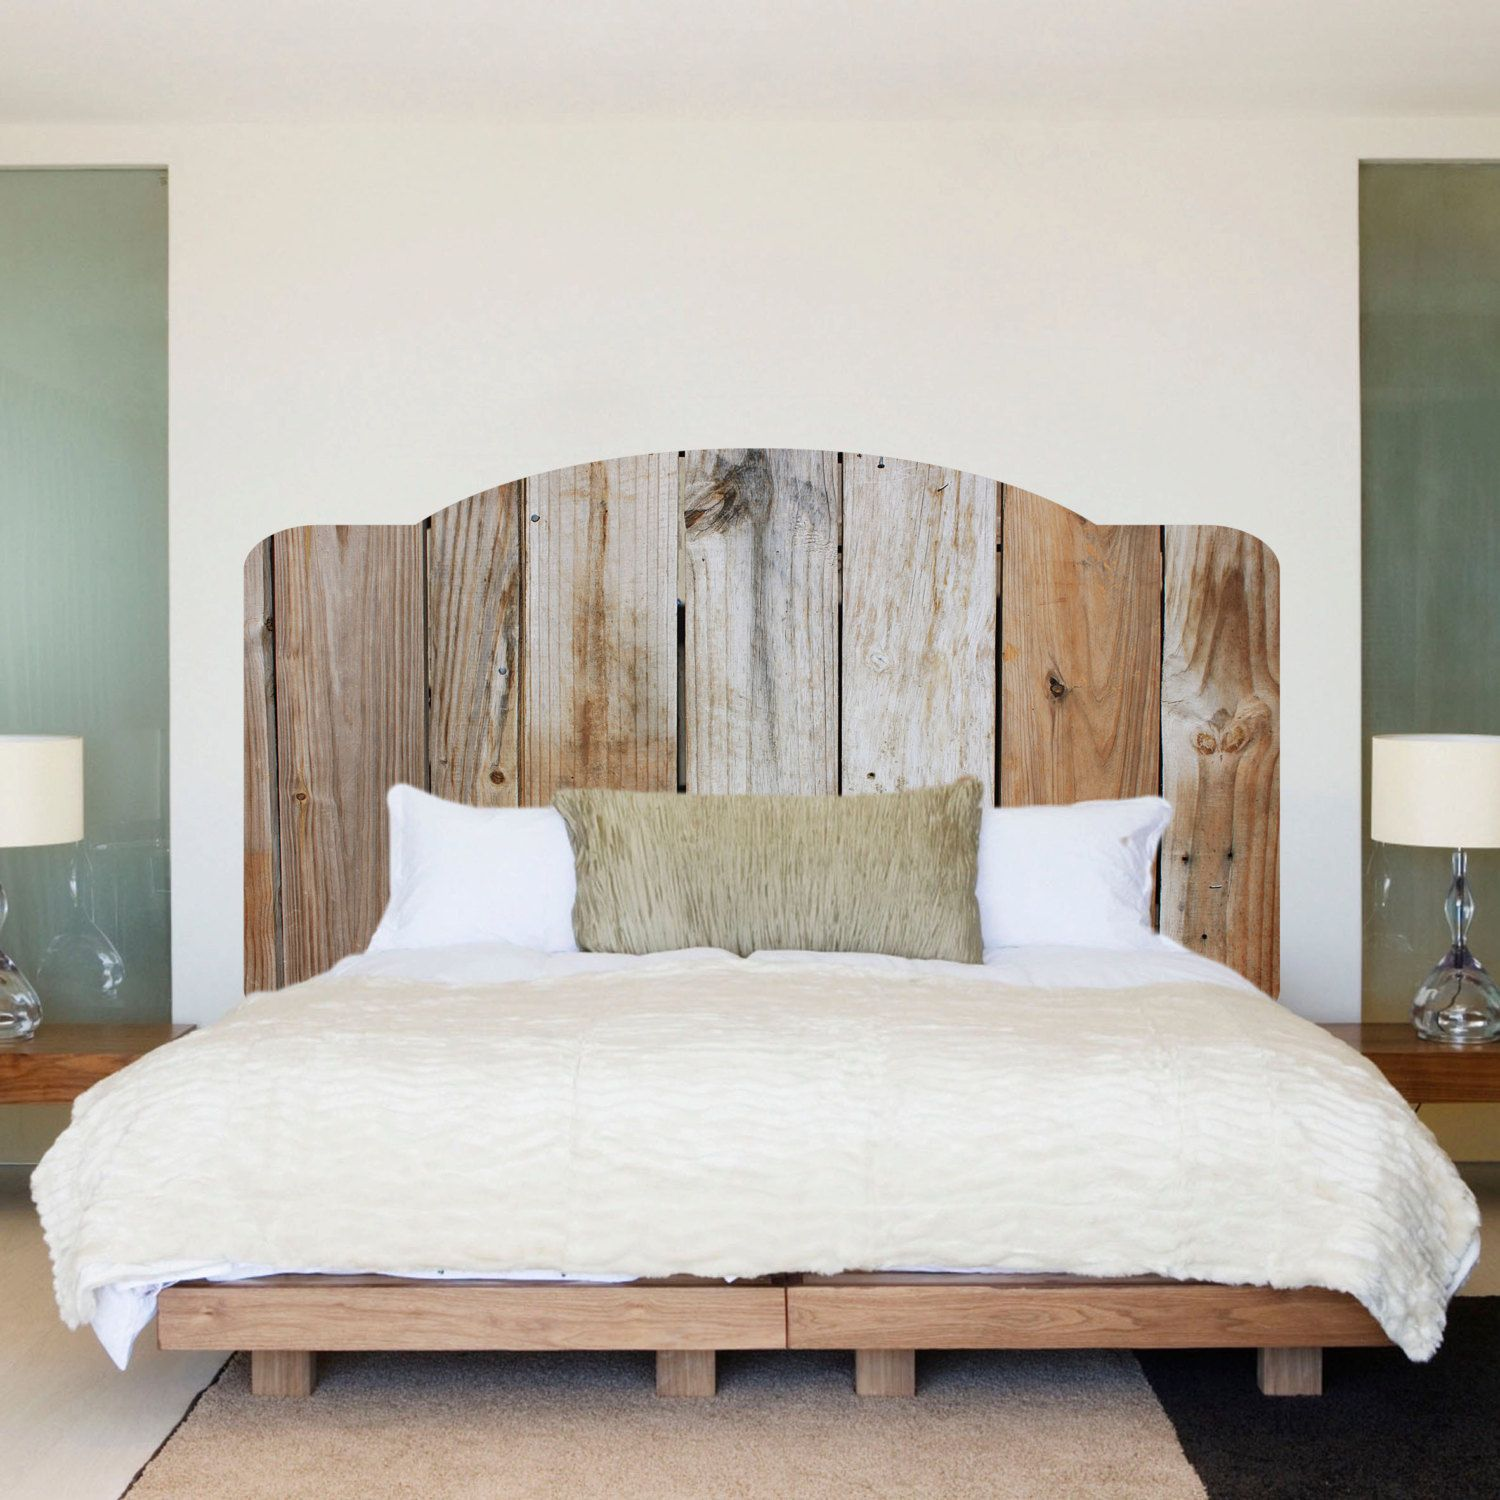 Rustic Wood Headboard Wall Decal, Rustic Headboard Wall Mural, Wooden  Headboard Bedroom Wall Sticker, Rustic Wood Bedroom Wall Design, c53